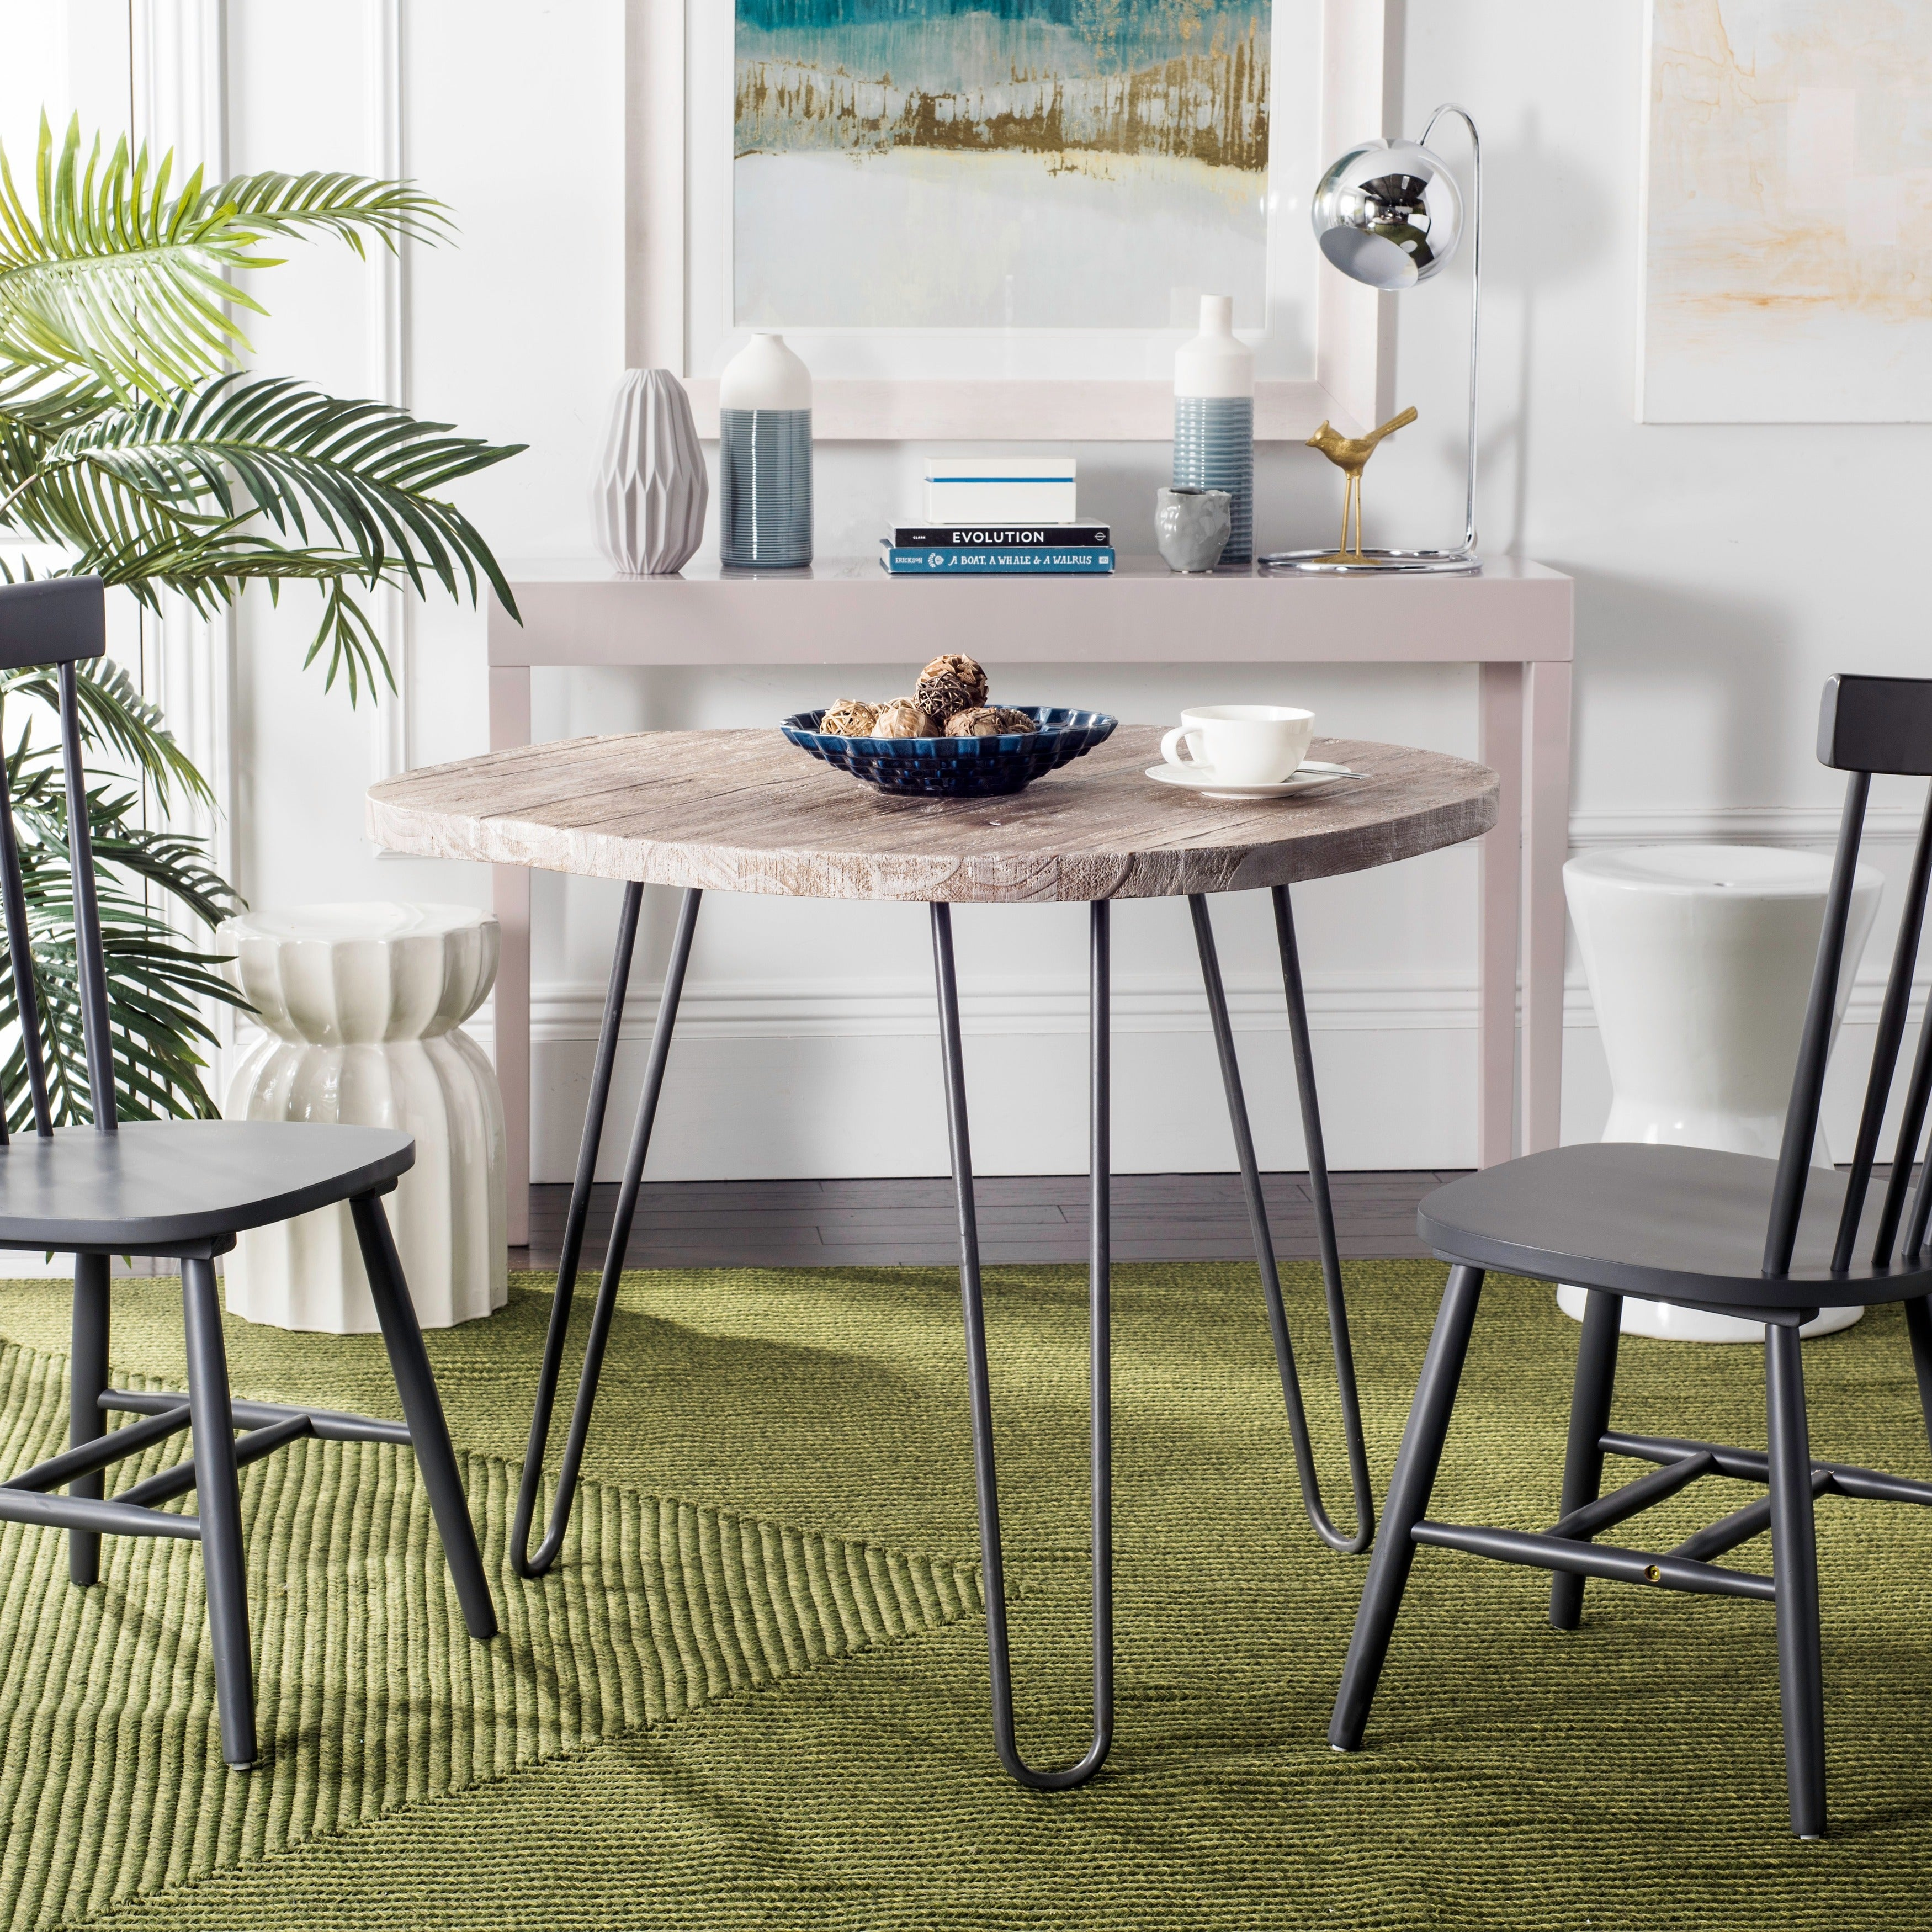 living cfm belham product table dining extension trestle kennedy inuse gray hayneedle